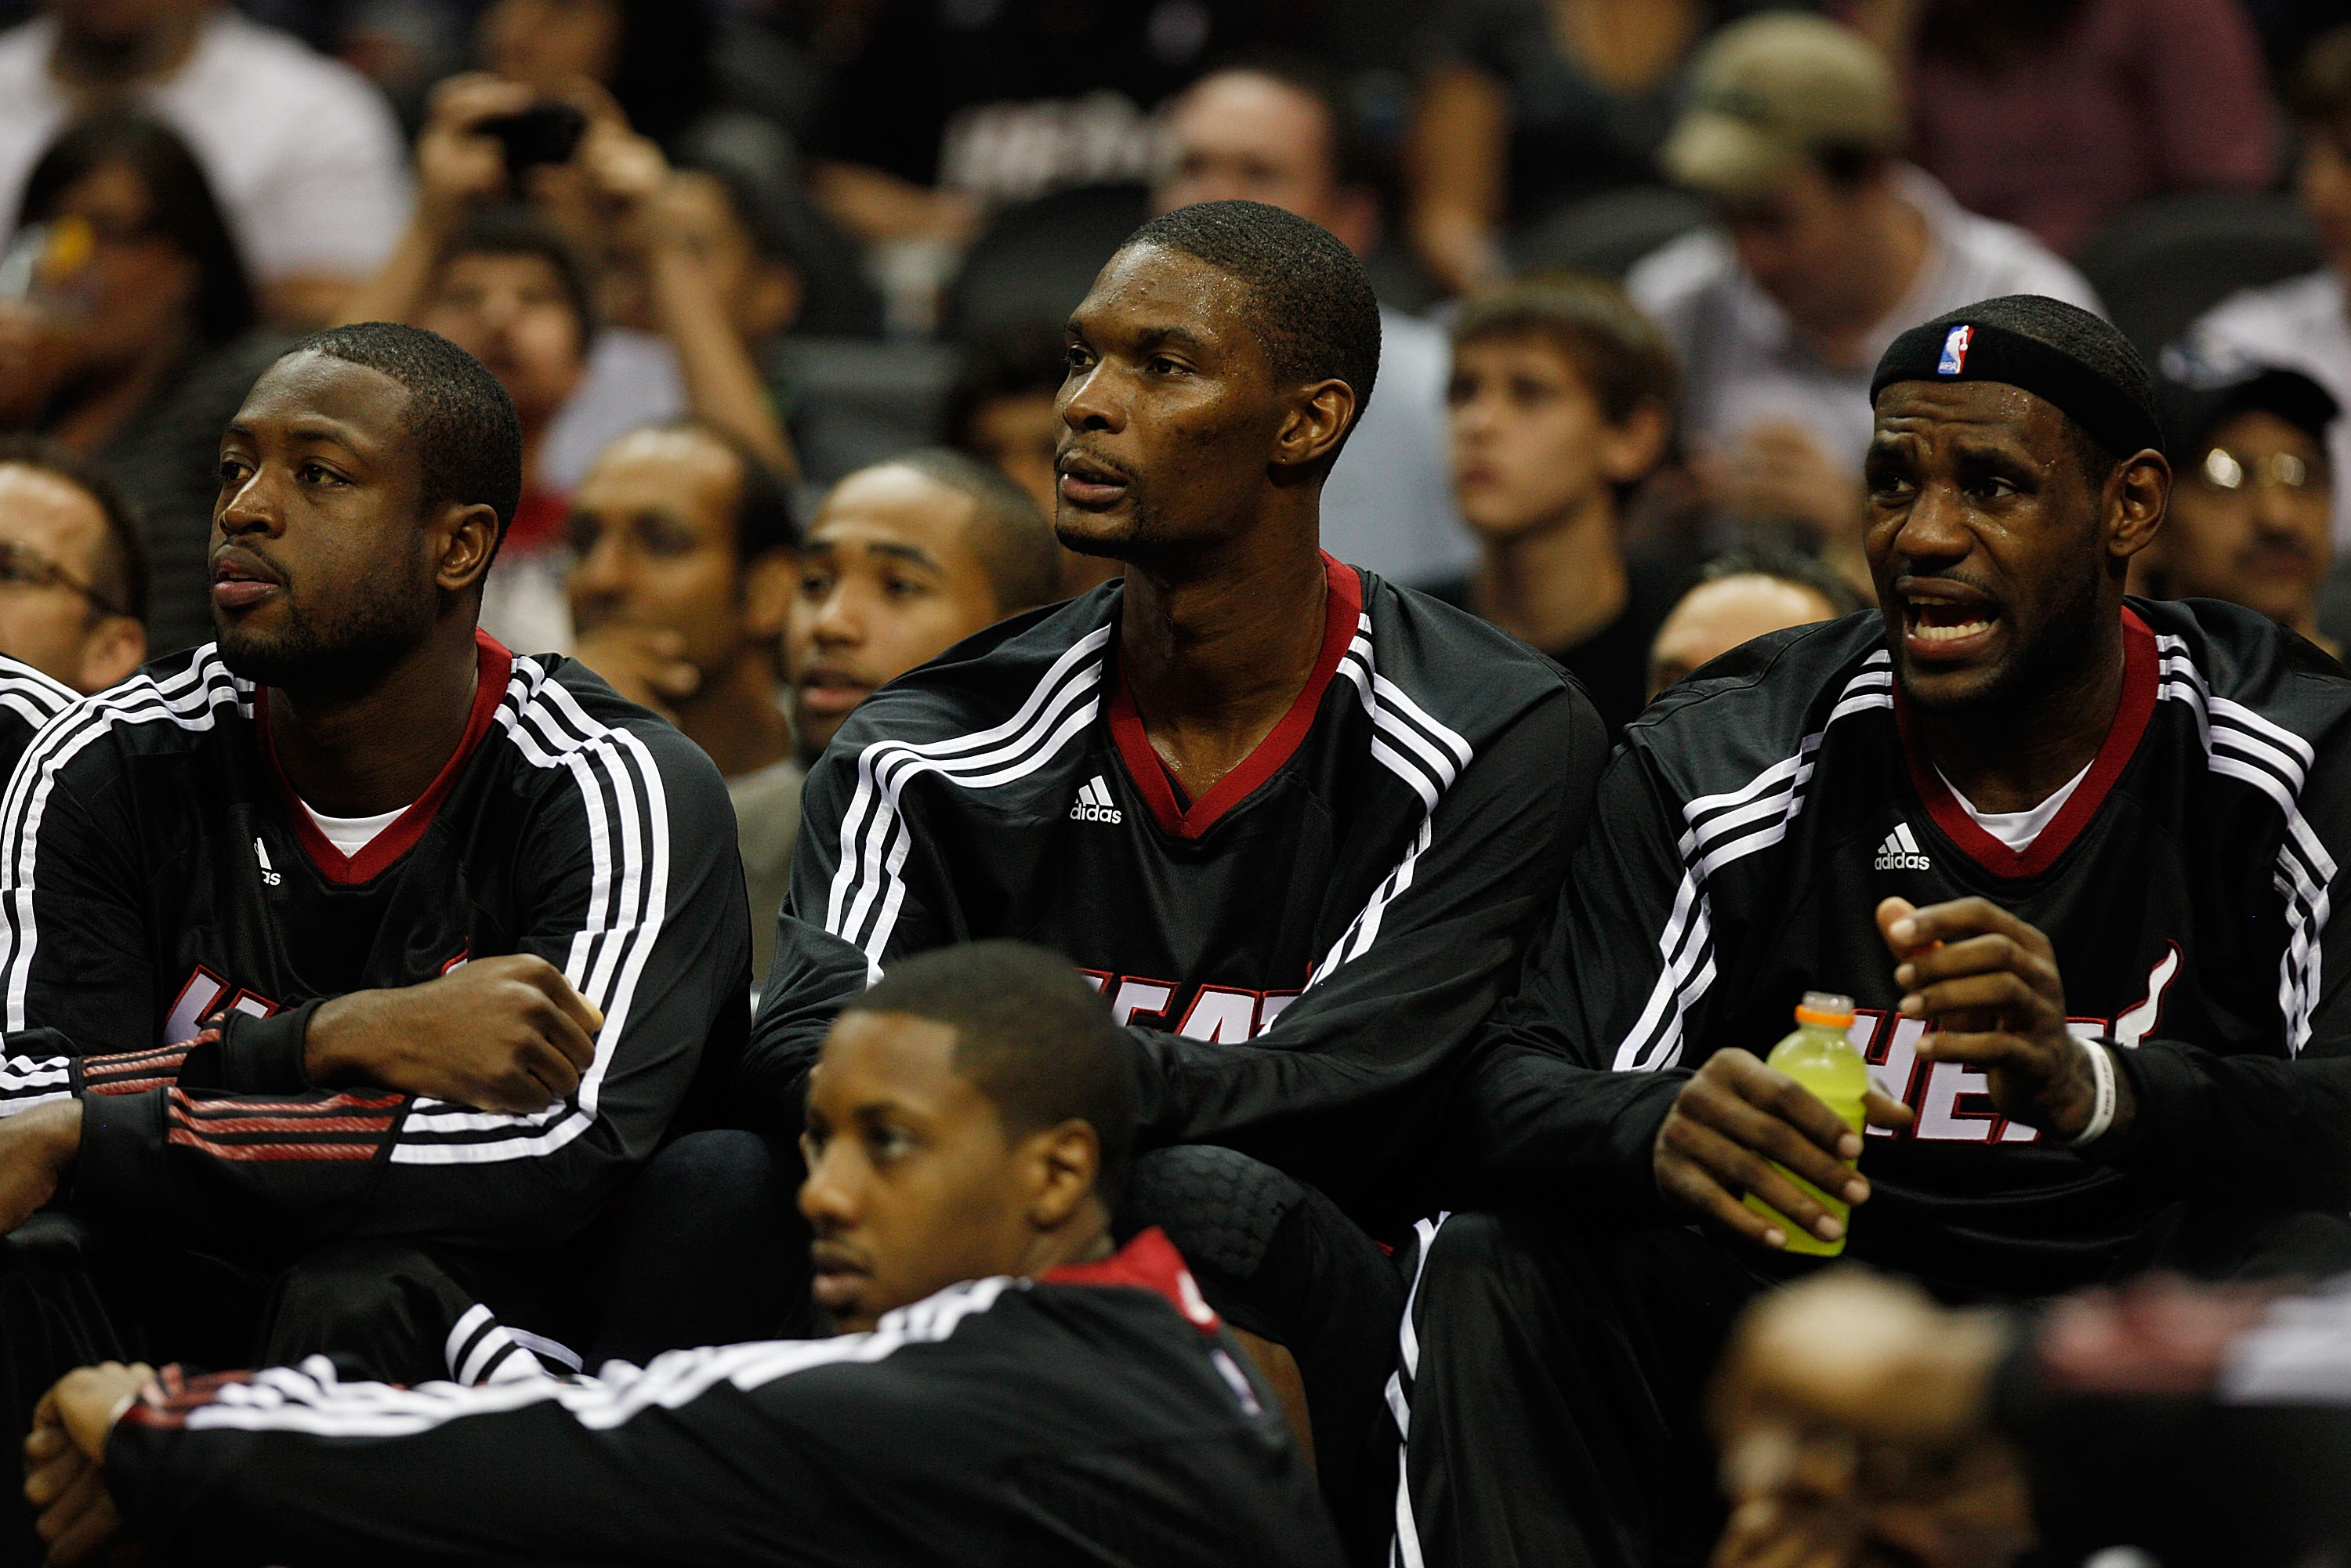 SAN ANTONIO - OCTOBER 09:  Dwayne Wade #3, Chris Bosh #1 and LeBron James #6 of the Miami Heat sit on the bench during the game against the San Antonio Spurs at the AT&T Center on October 9, 2010 in San Antonio, Texas.  NOTE TO USER: User expressly acknow